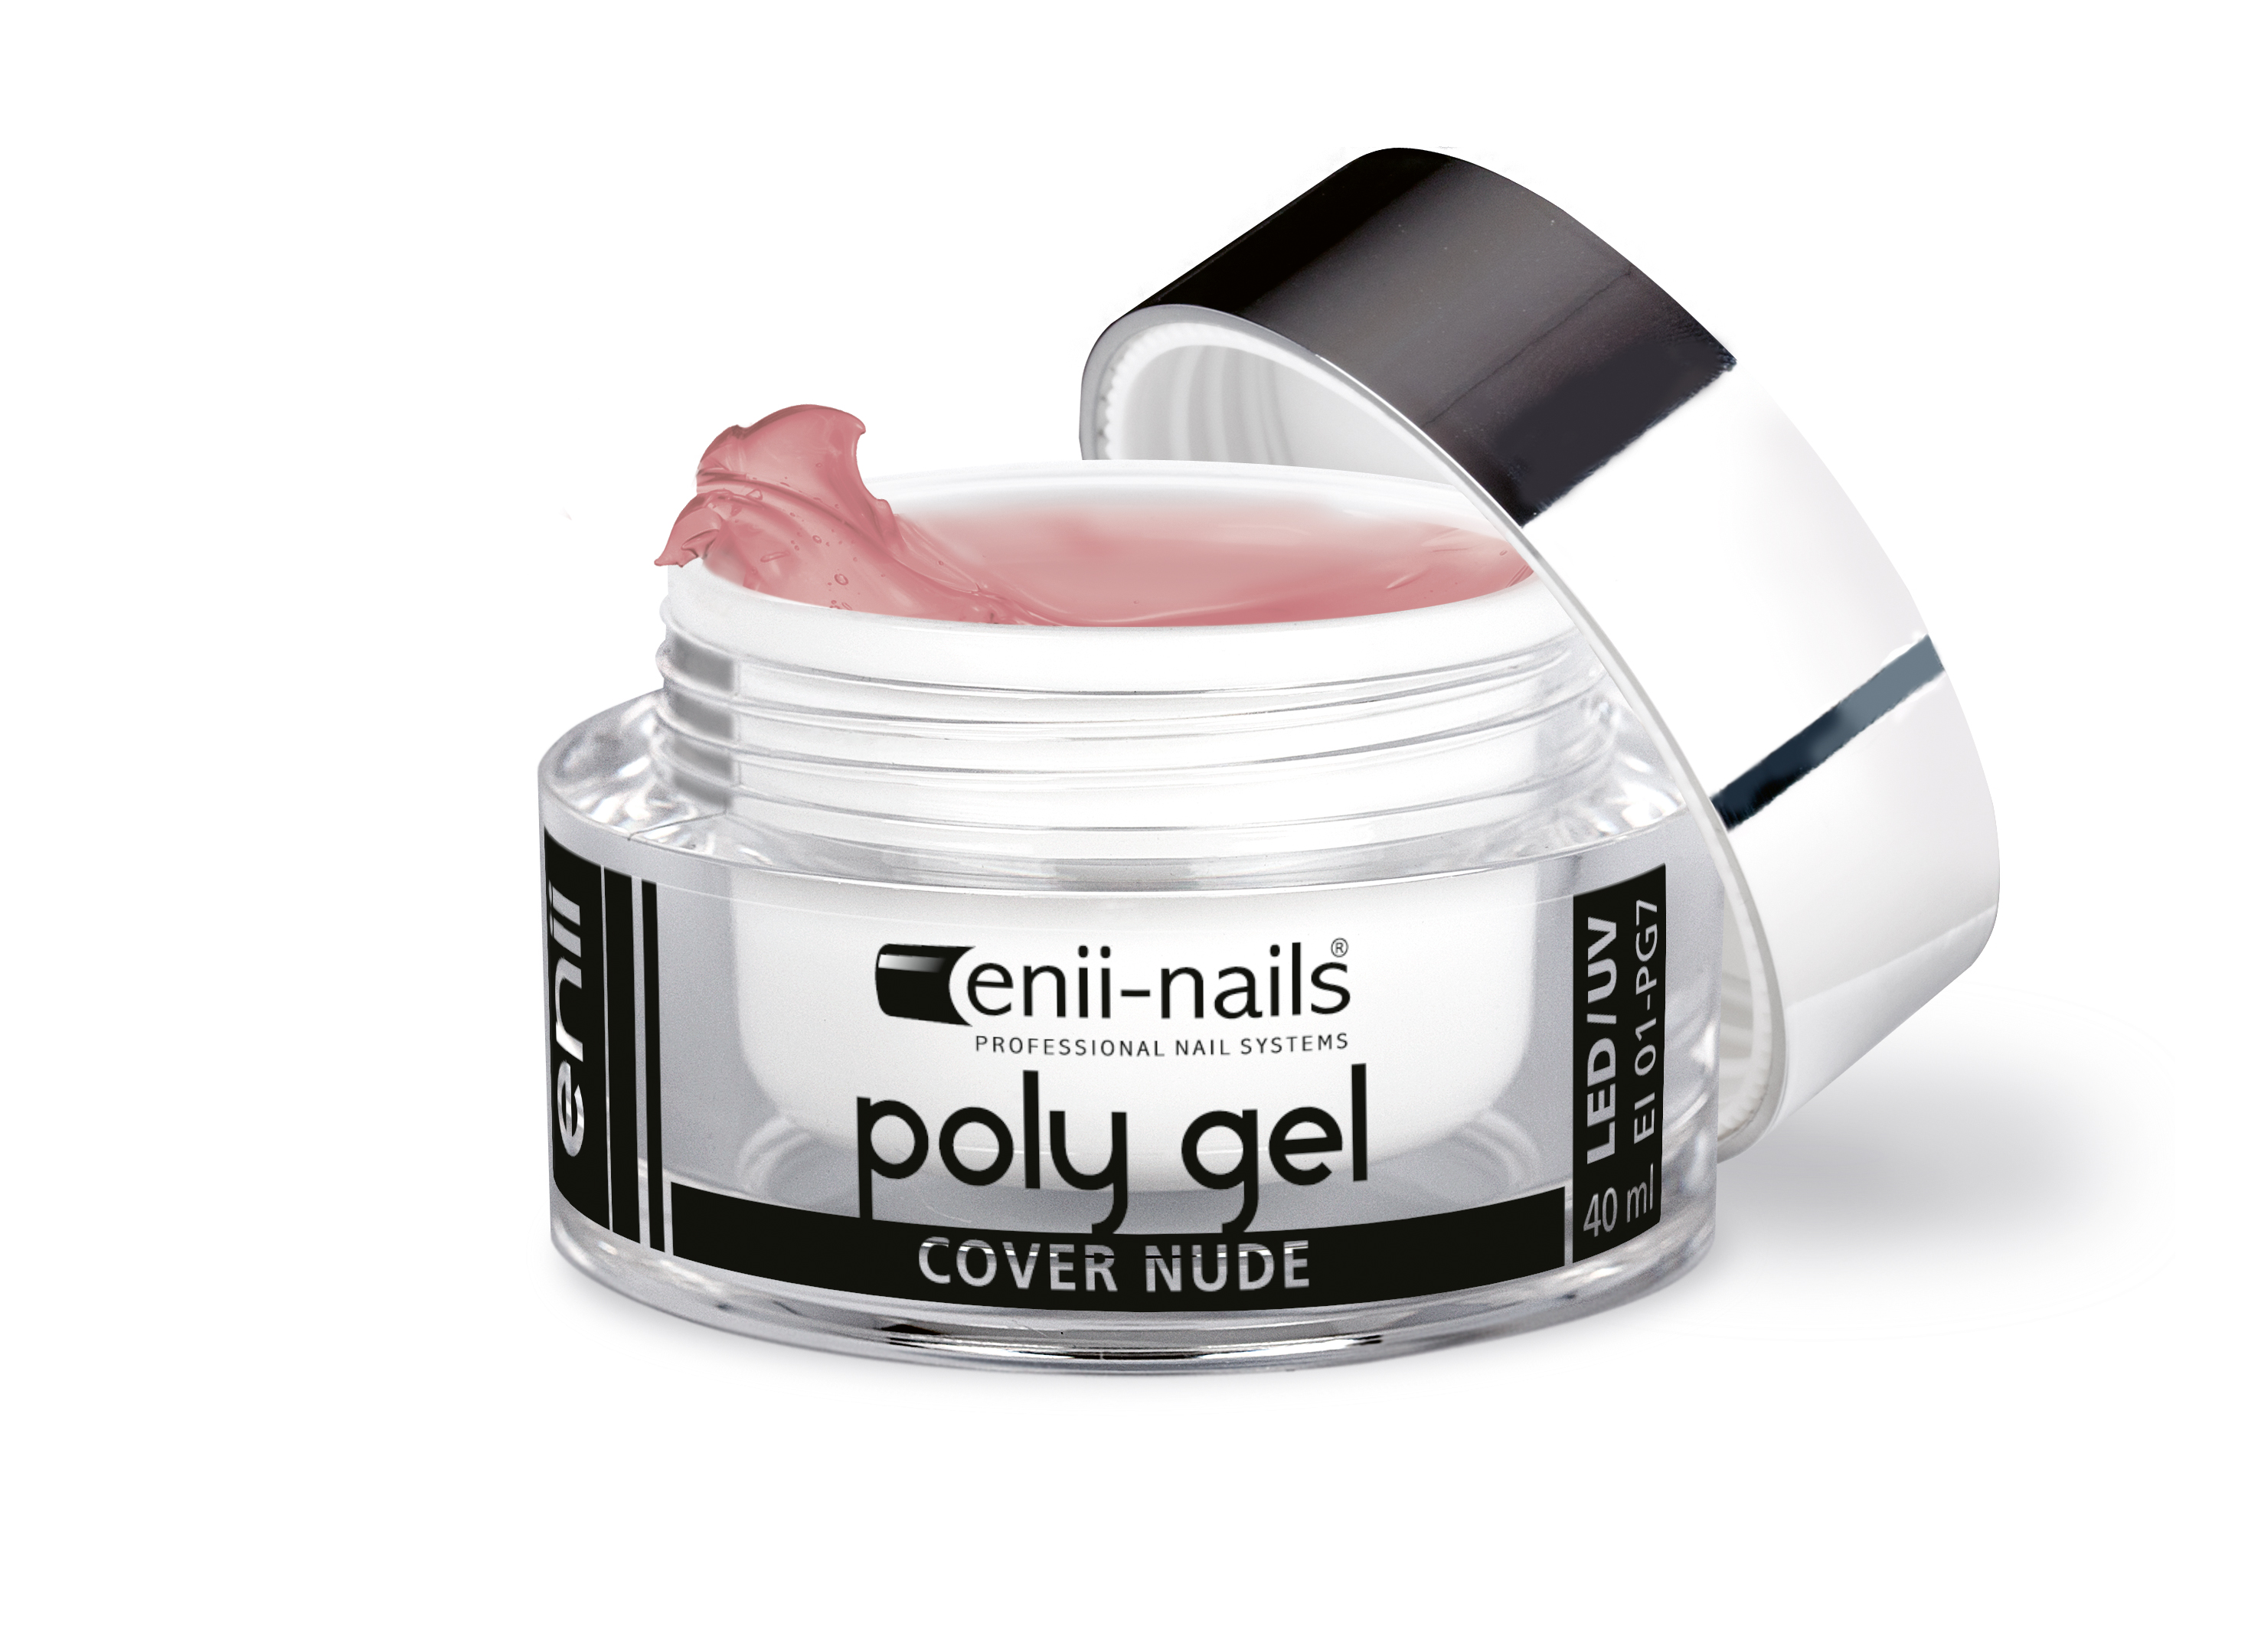 ENII-NAILS ENII POLY GEL - cover nude 10 ml